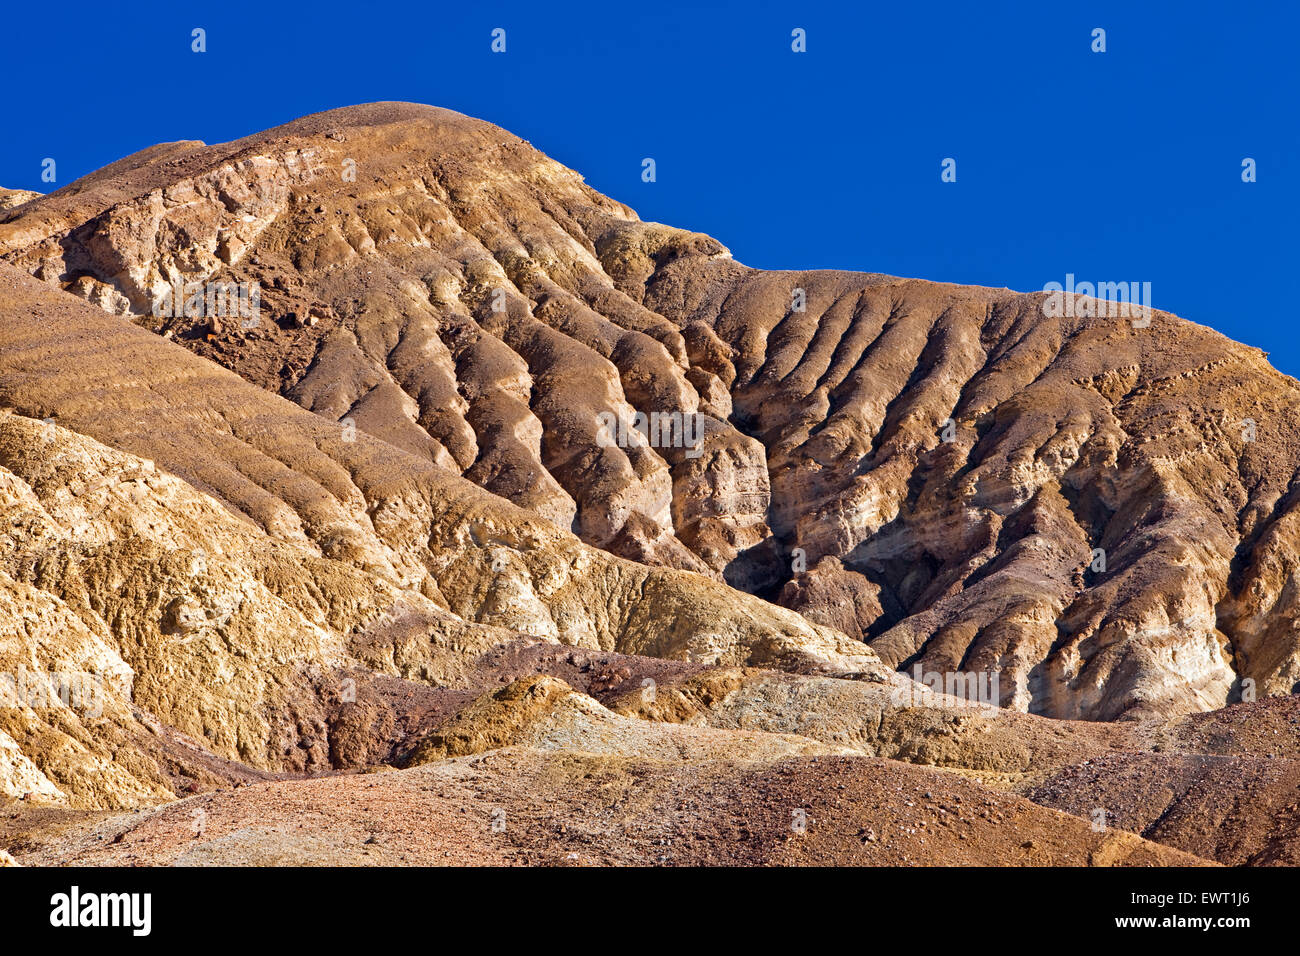 Face of Black Mountains with various colors of rock (different minerals), Along Artists Drive, Death Valley National - Stock Image